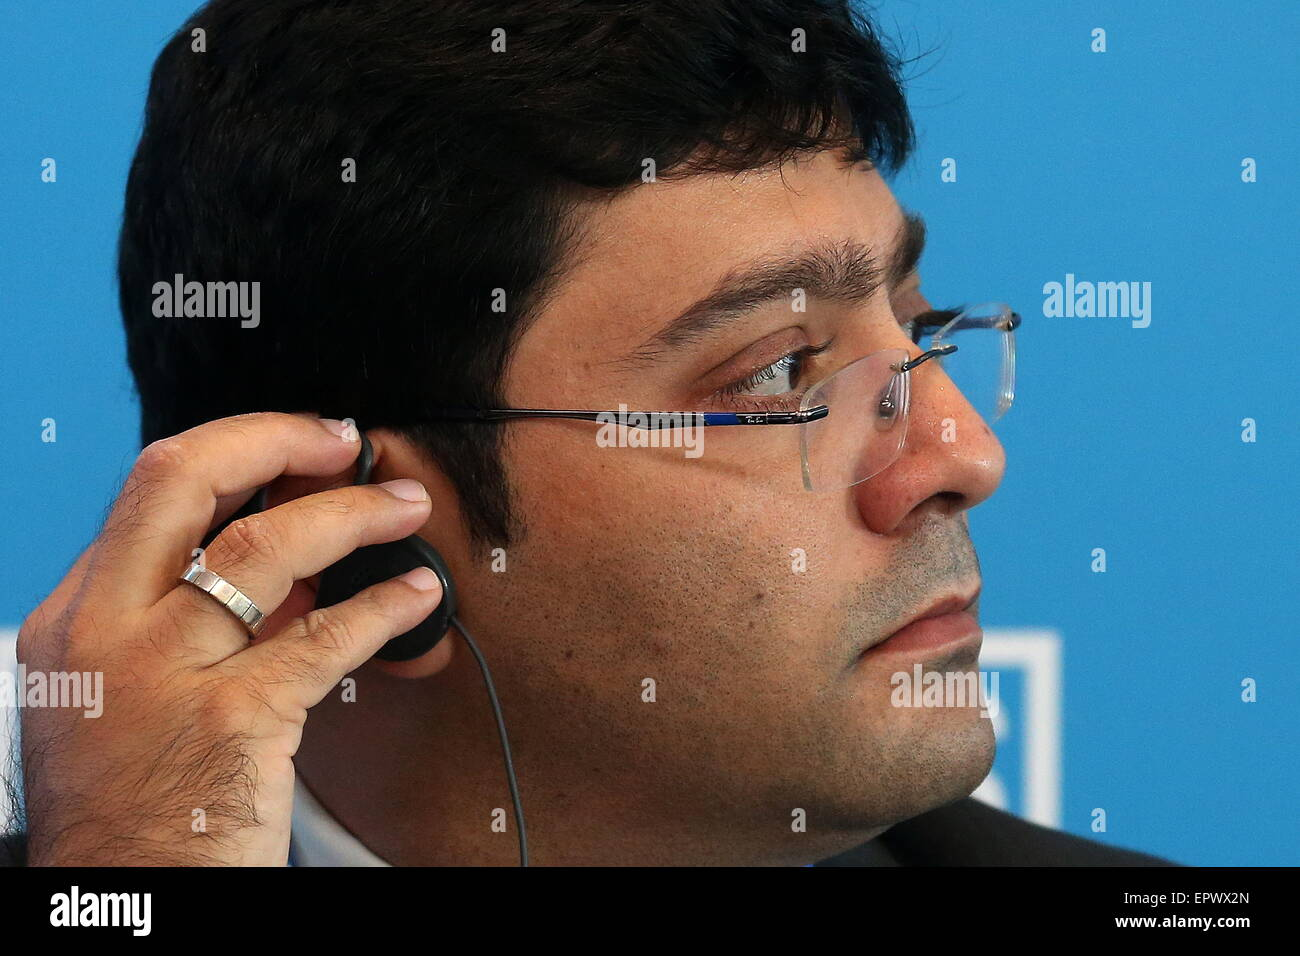 Moscow, Russia. 22nd May, 2015. Akshay Mathur, head of research at Gateway House Indian council on global Relations, - Stock Image